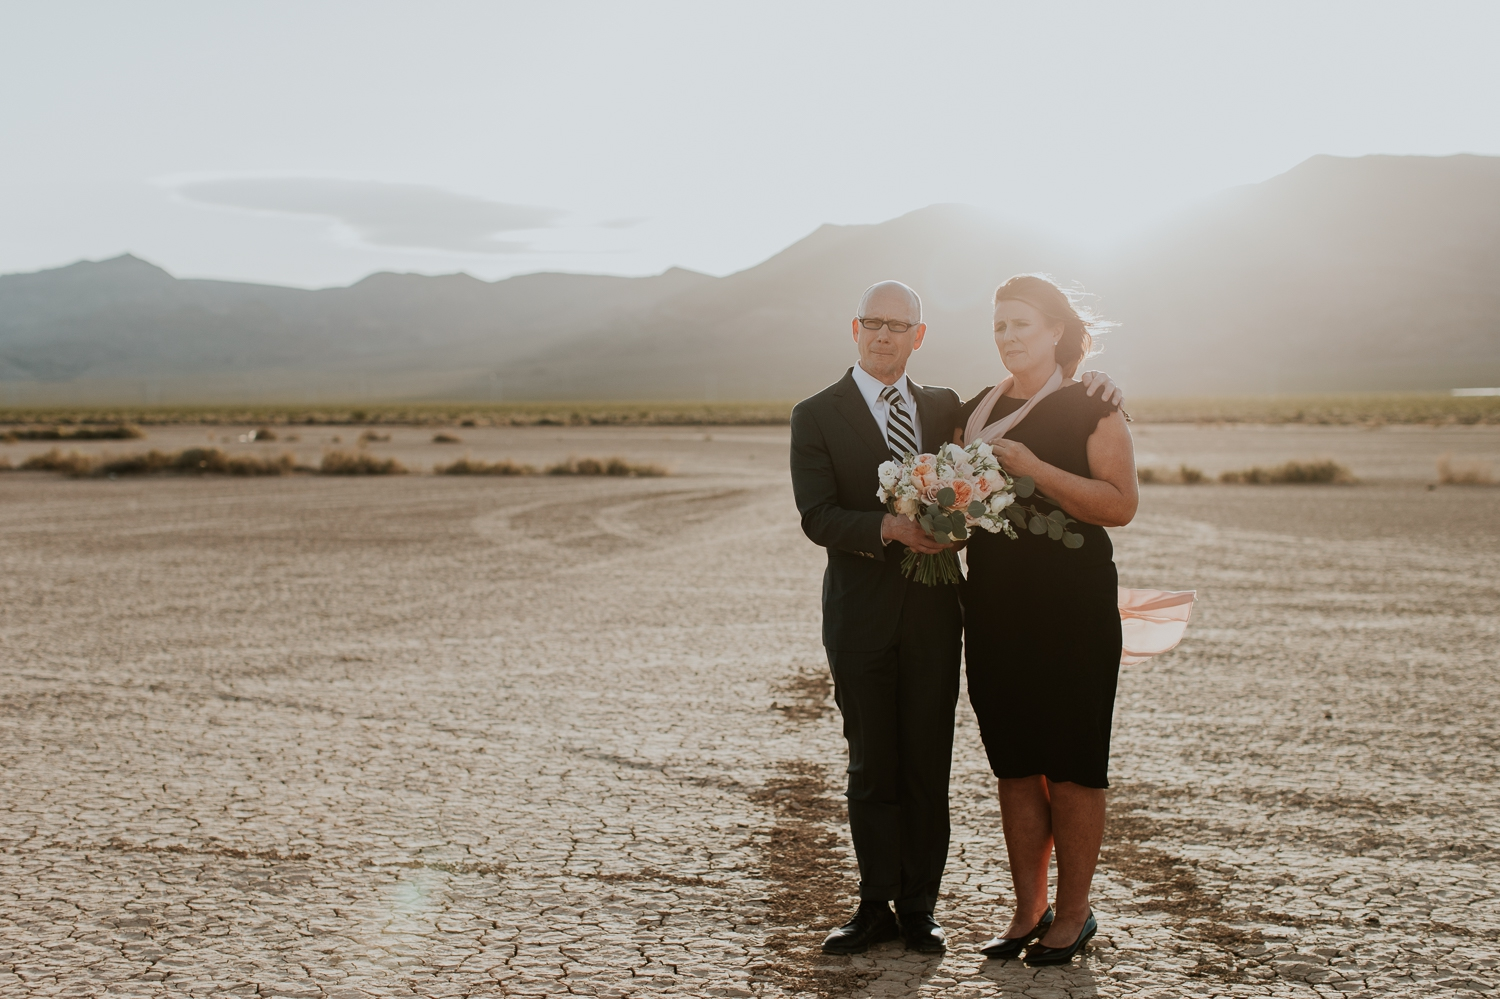 destination-photographer-colorado-dry-beds-nevada-elopement 47.jpg